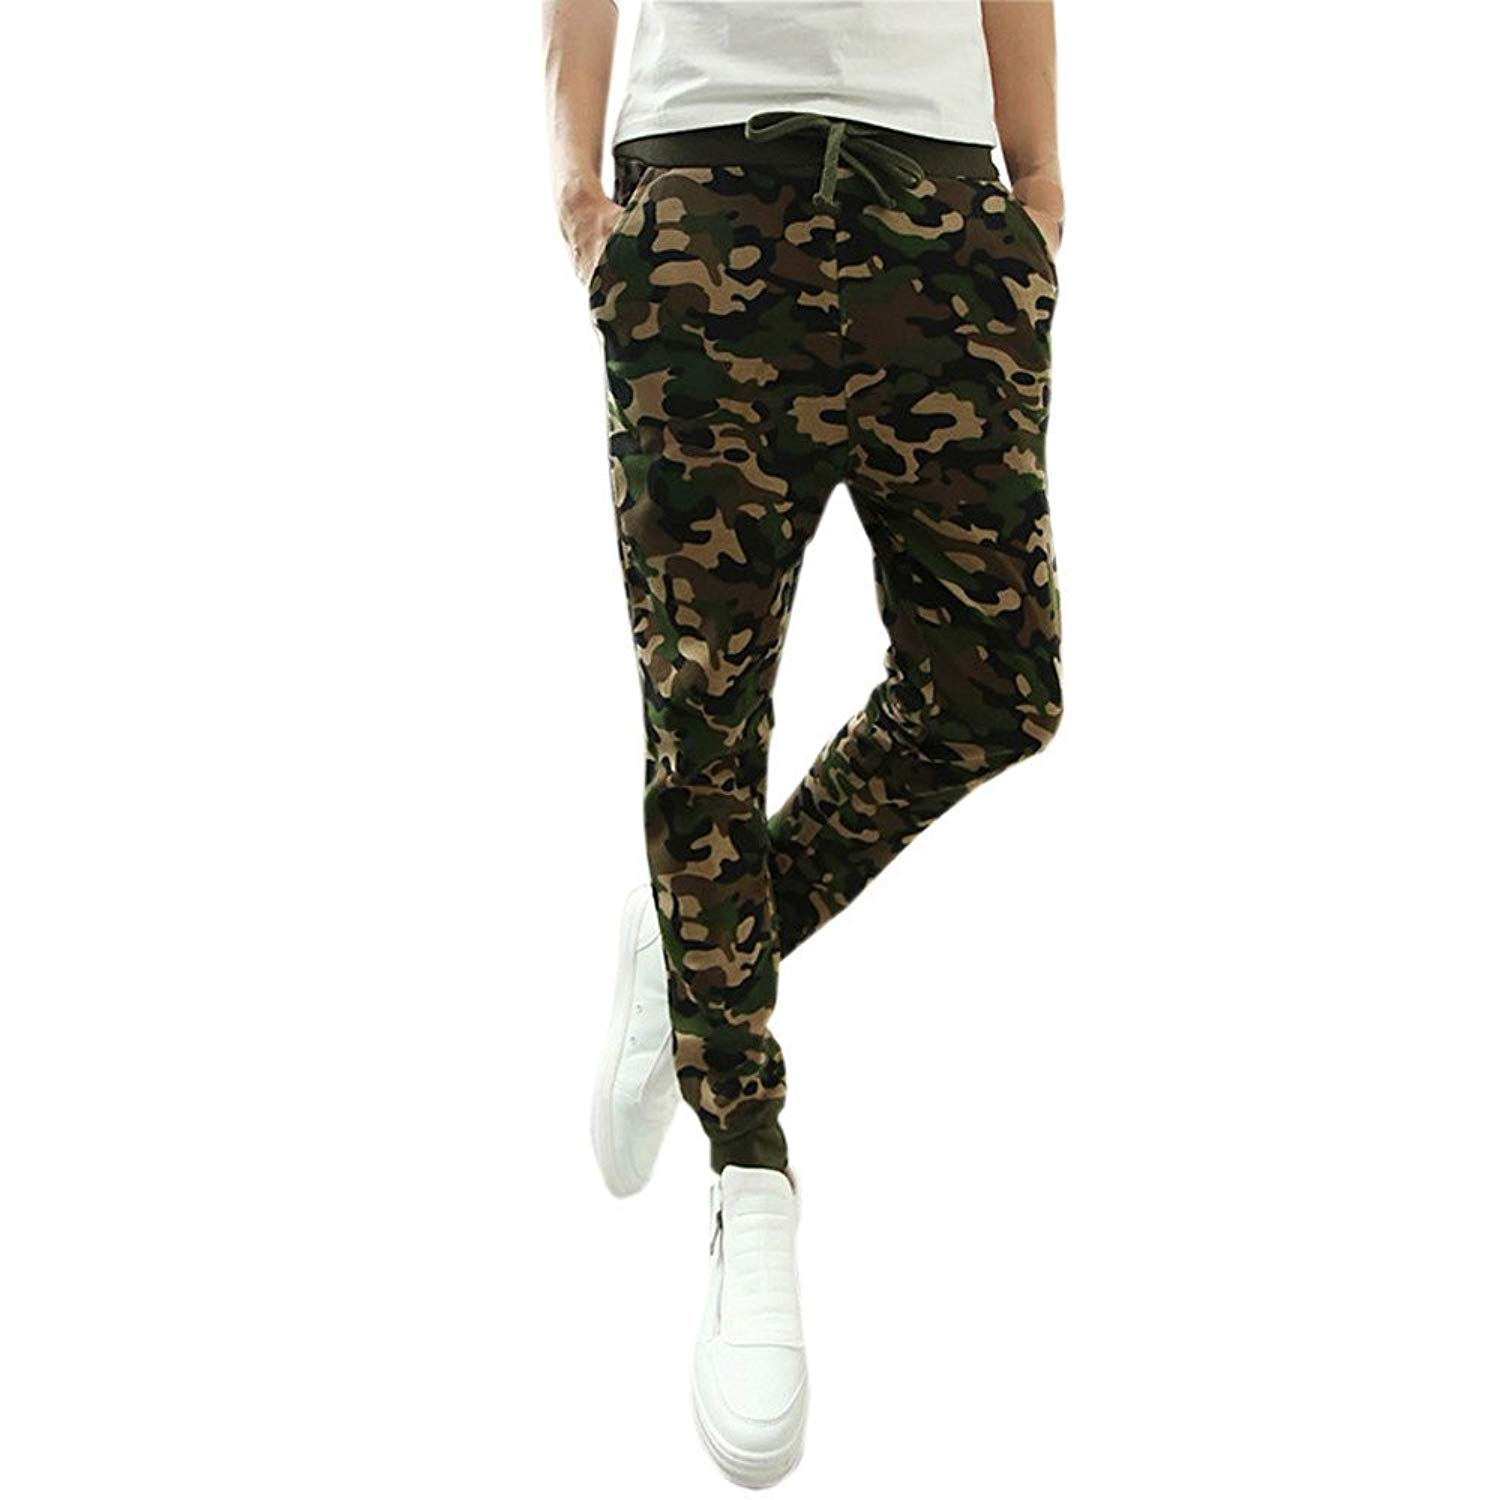 Sweatpants For Men,Clearance Sale-Farjing Mens Fashion Camouflage Trousers Pants Casual Pants Sweatpants